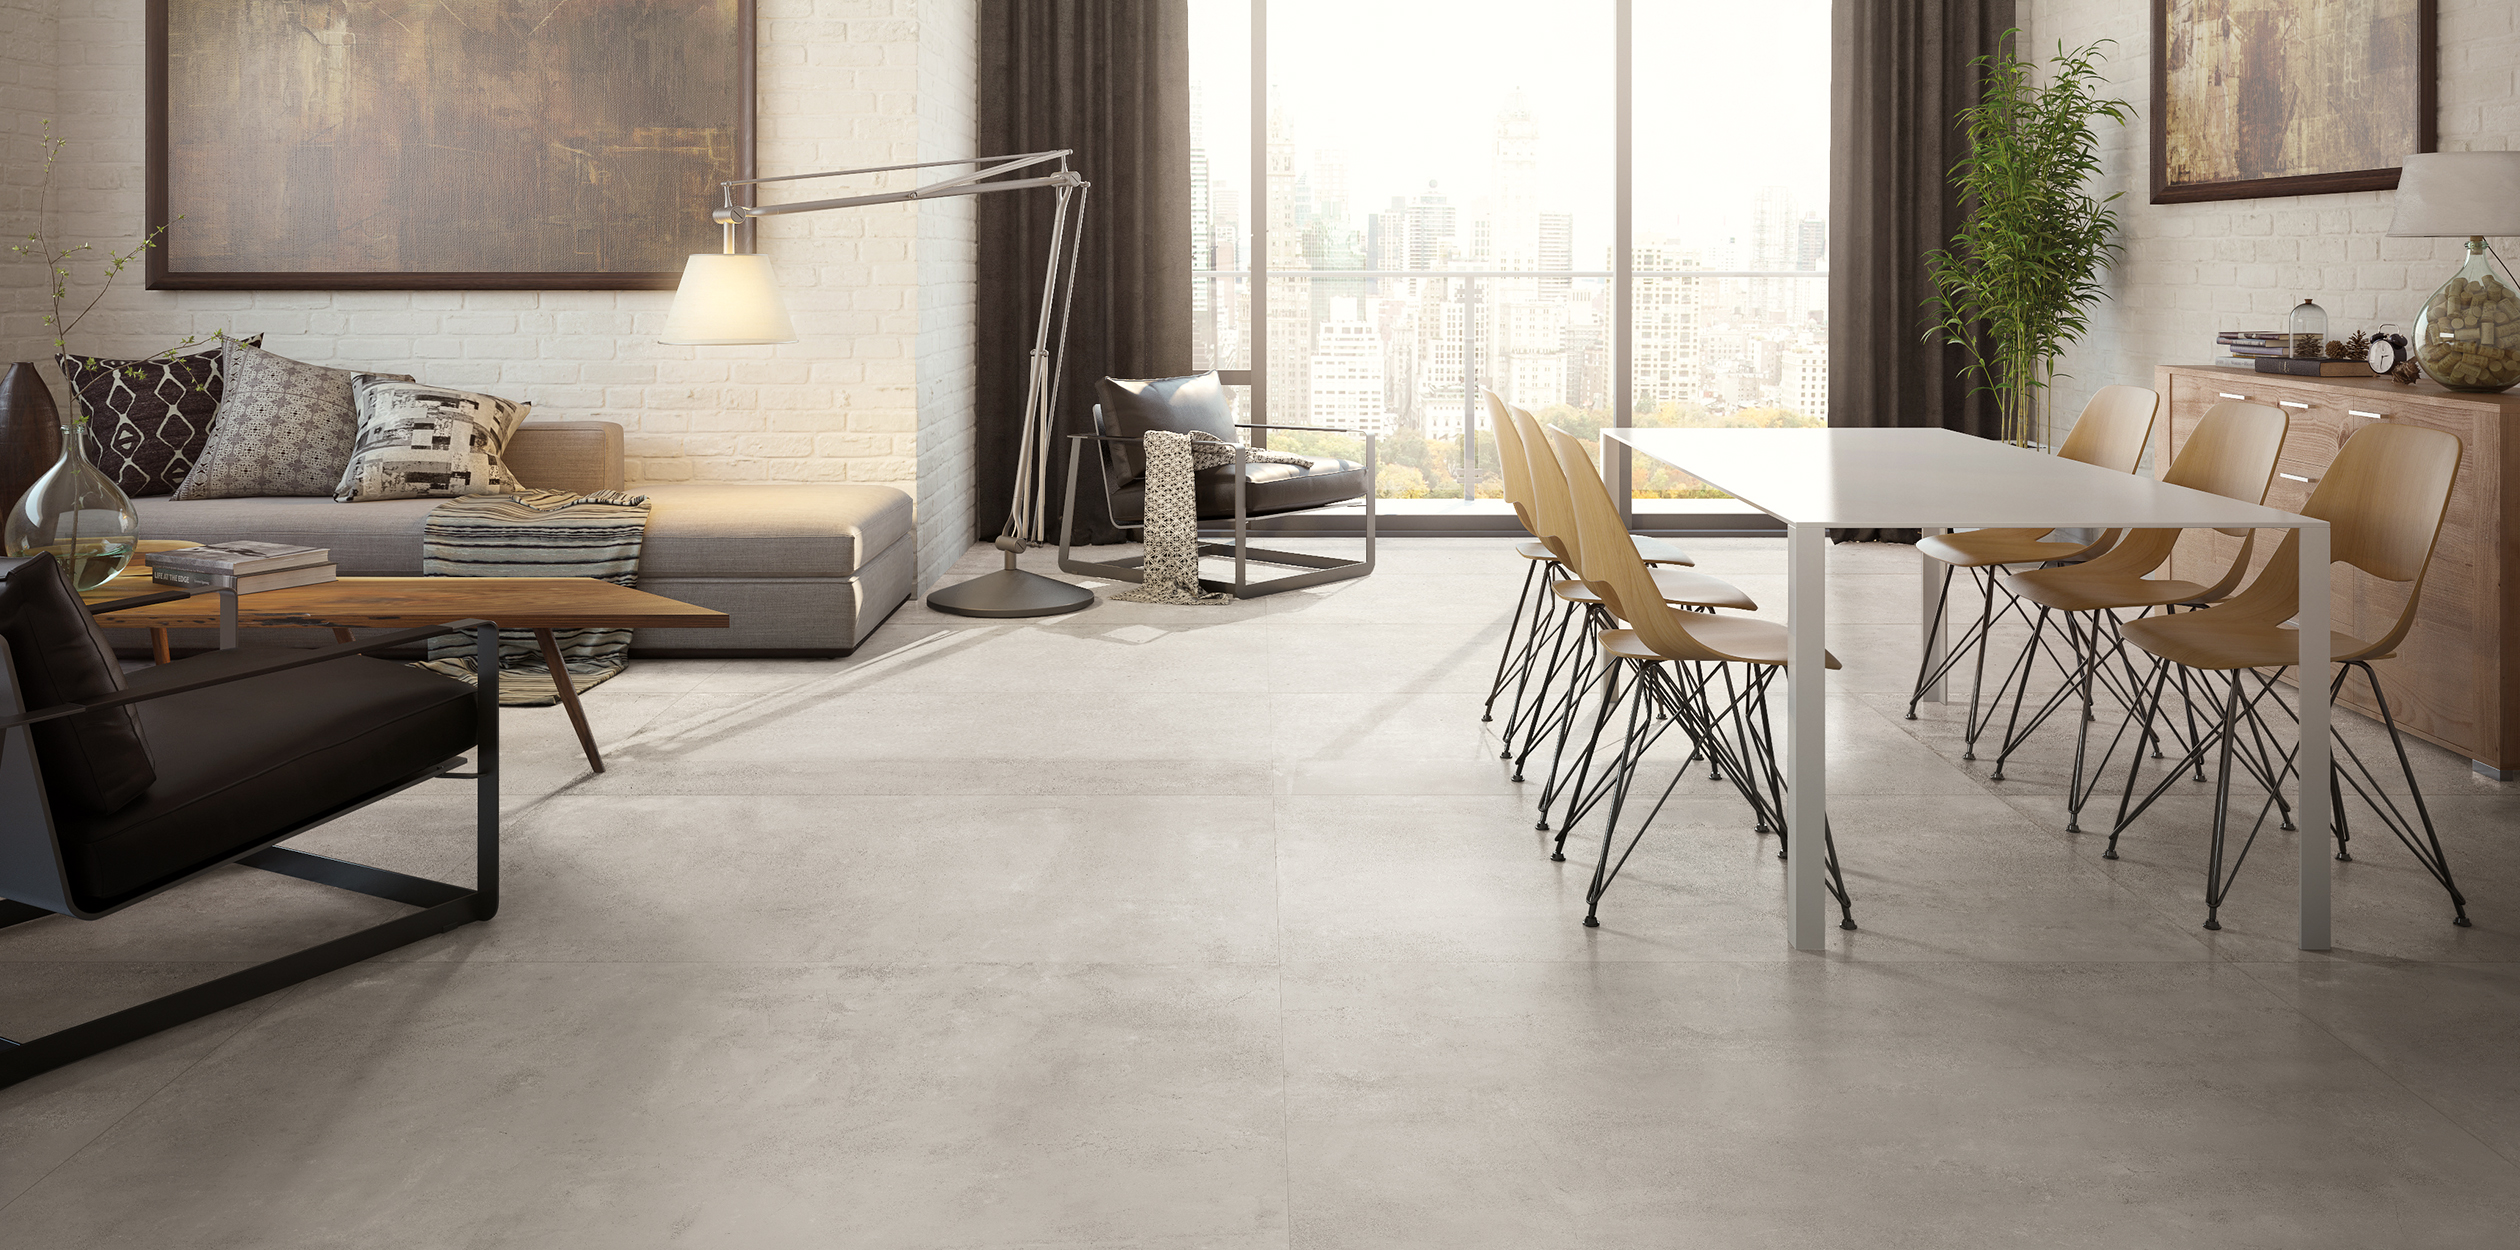 qstone_endless_grey_floor